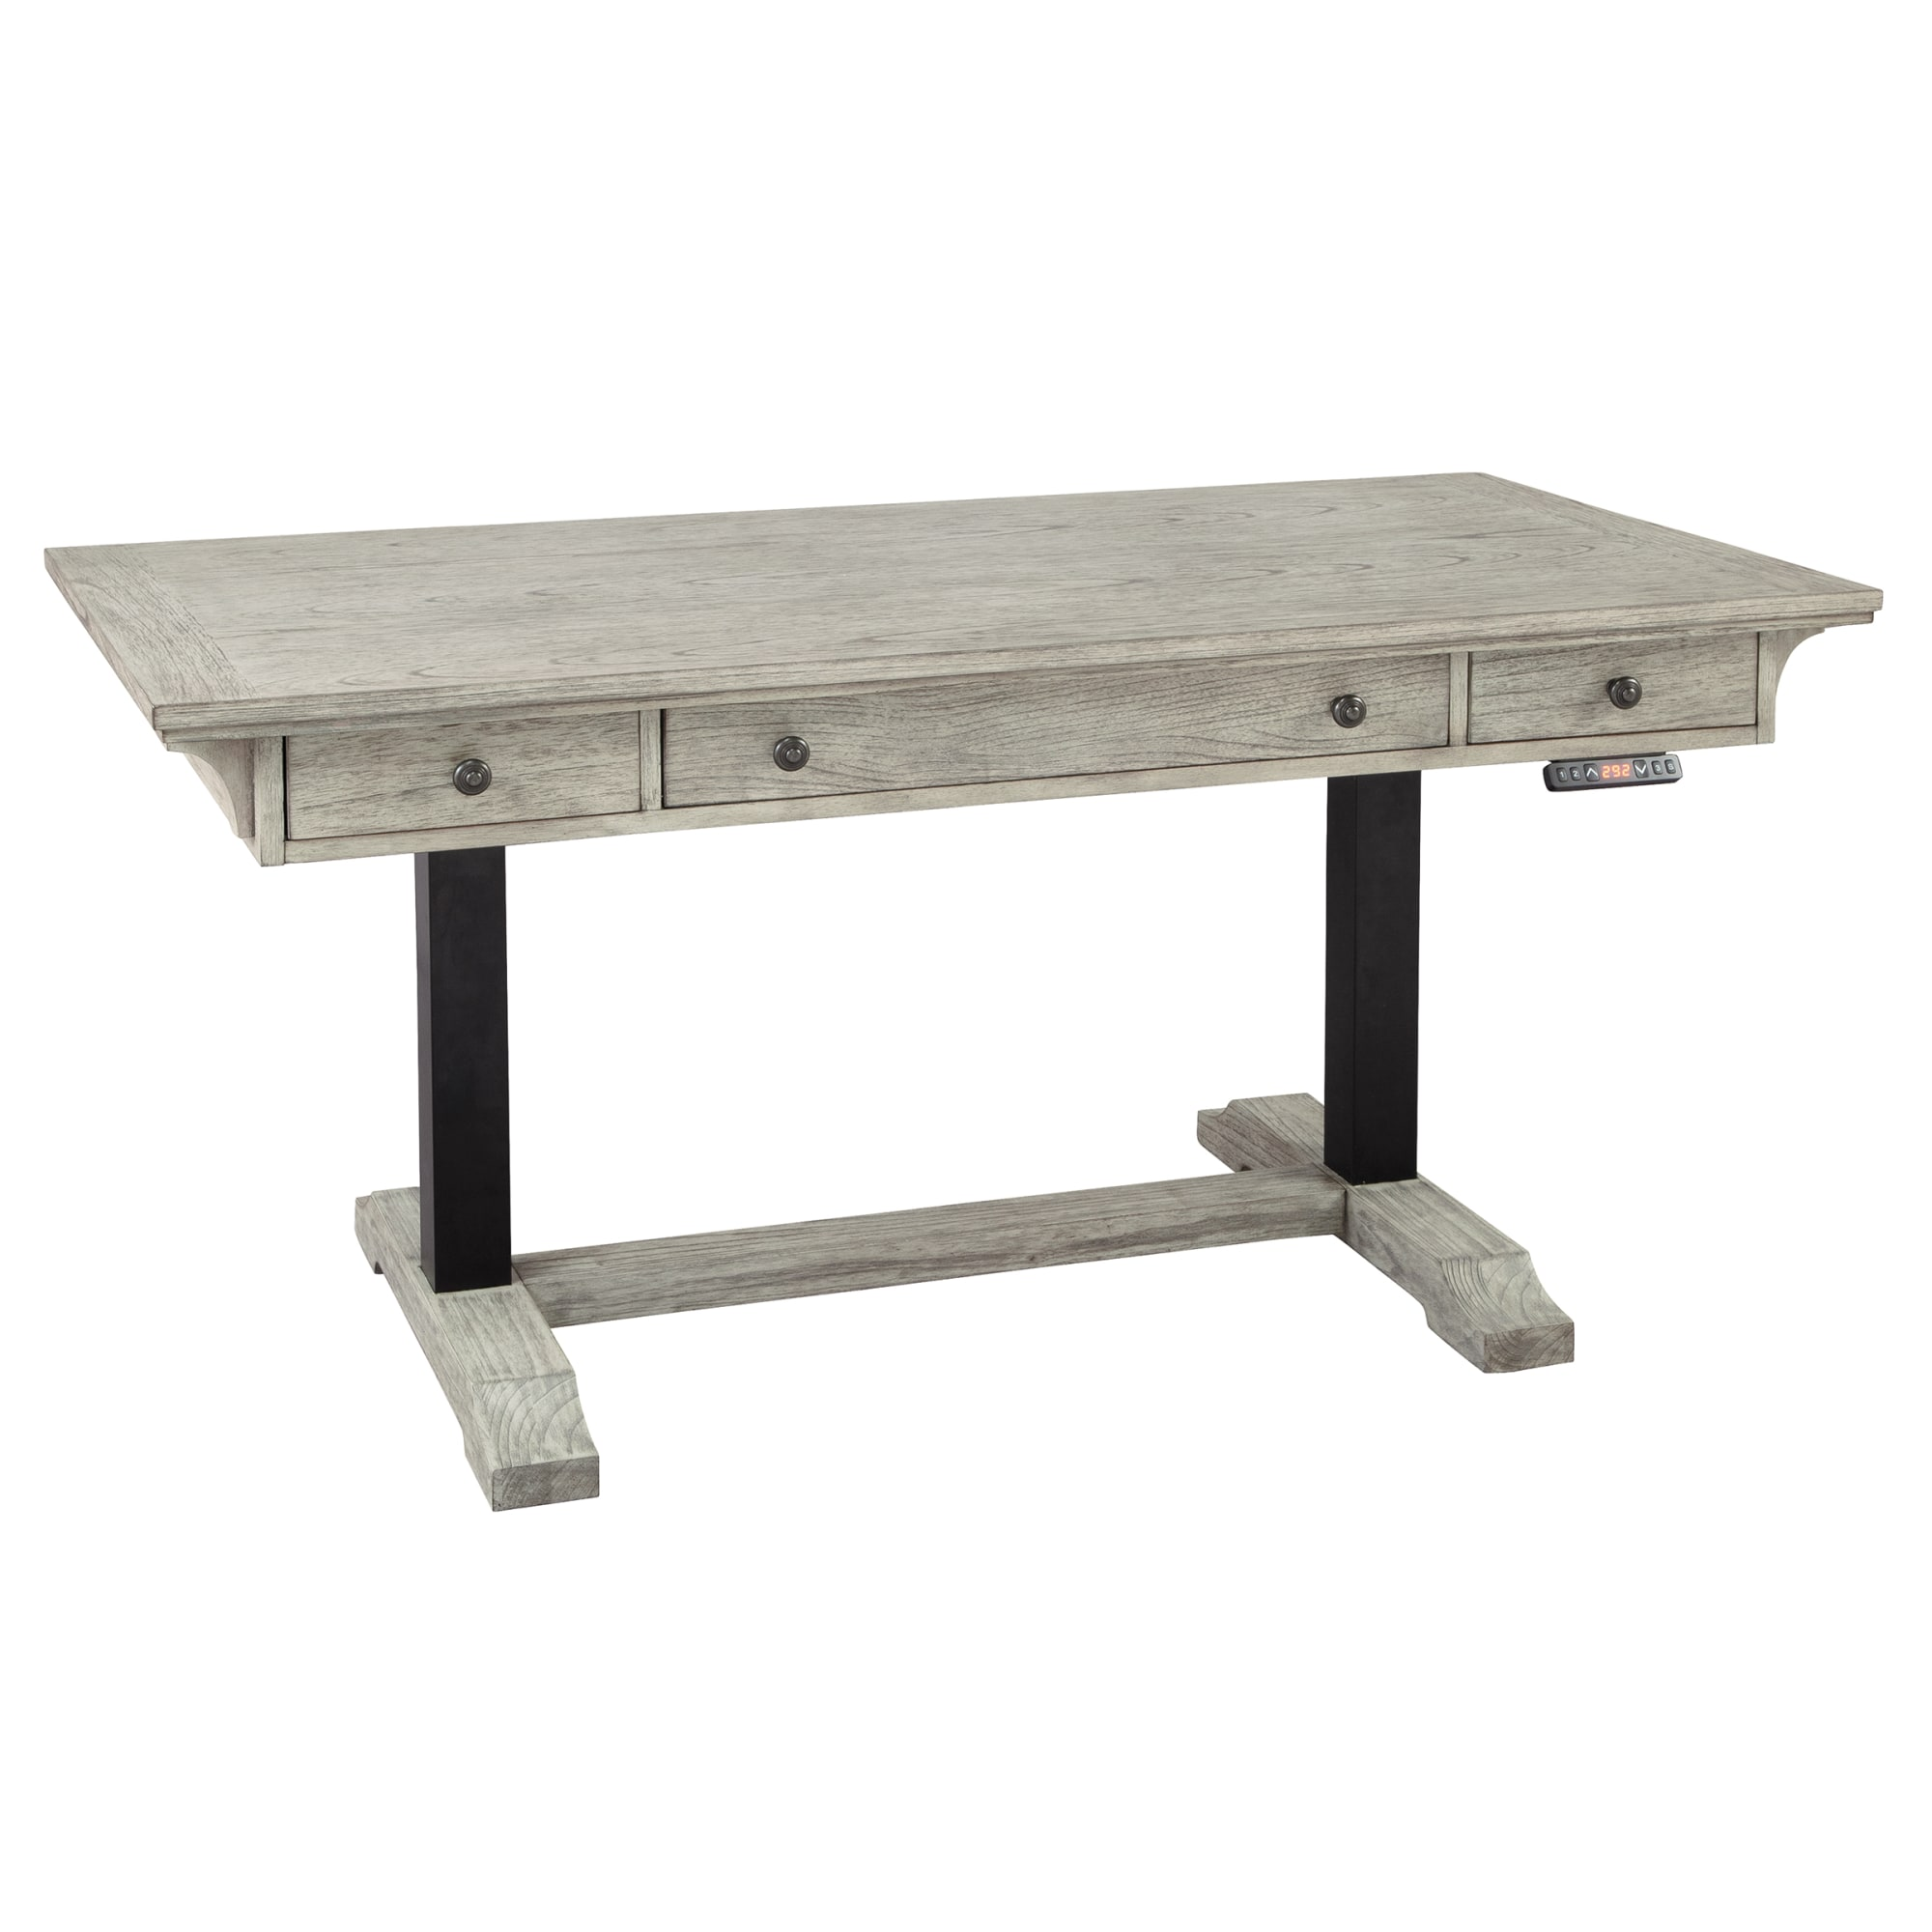 Image for 2-7978 office@home Grand Junction Lift Desk from Hekman Official Website